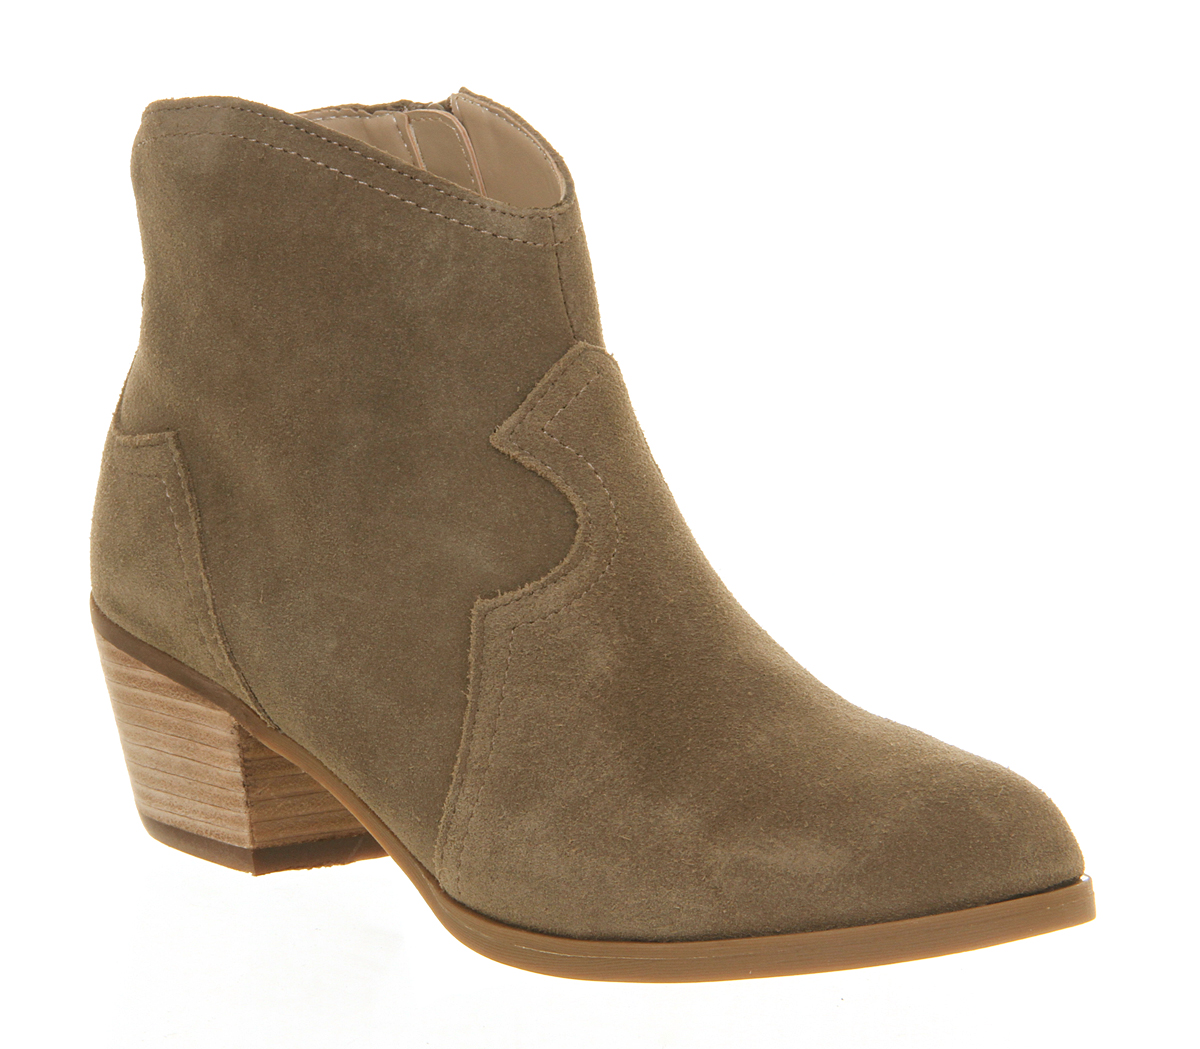 western style ankle boots